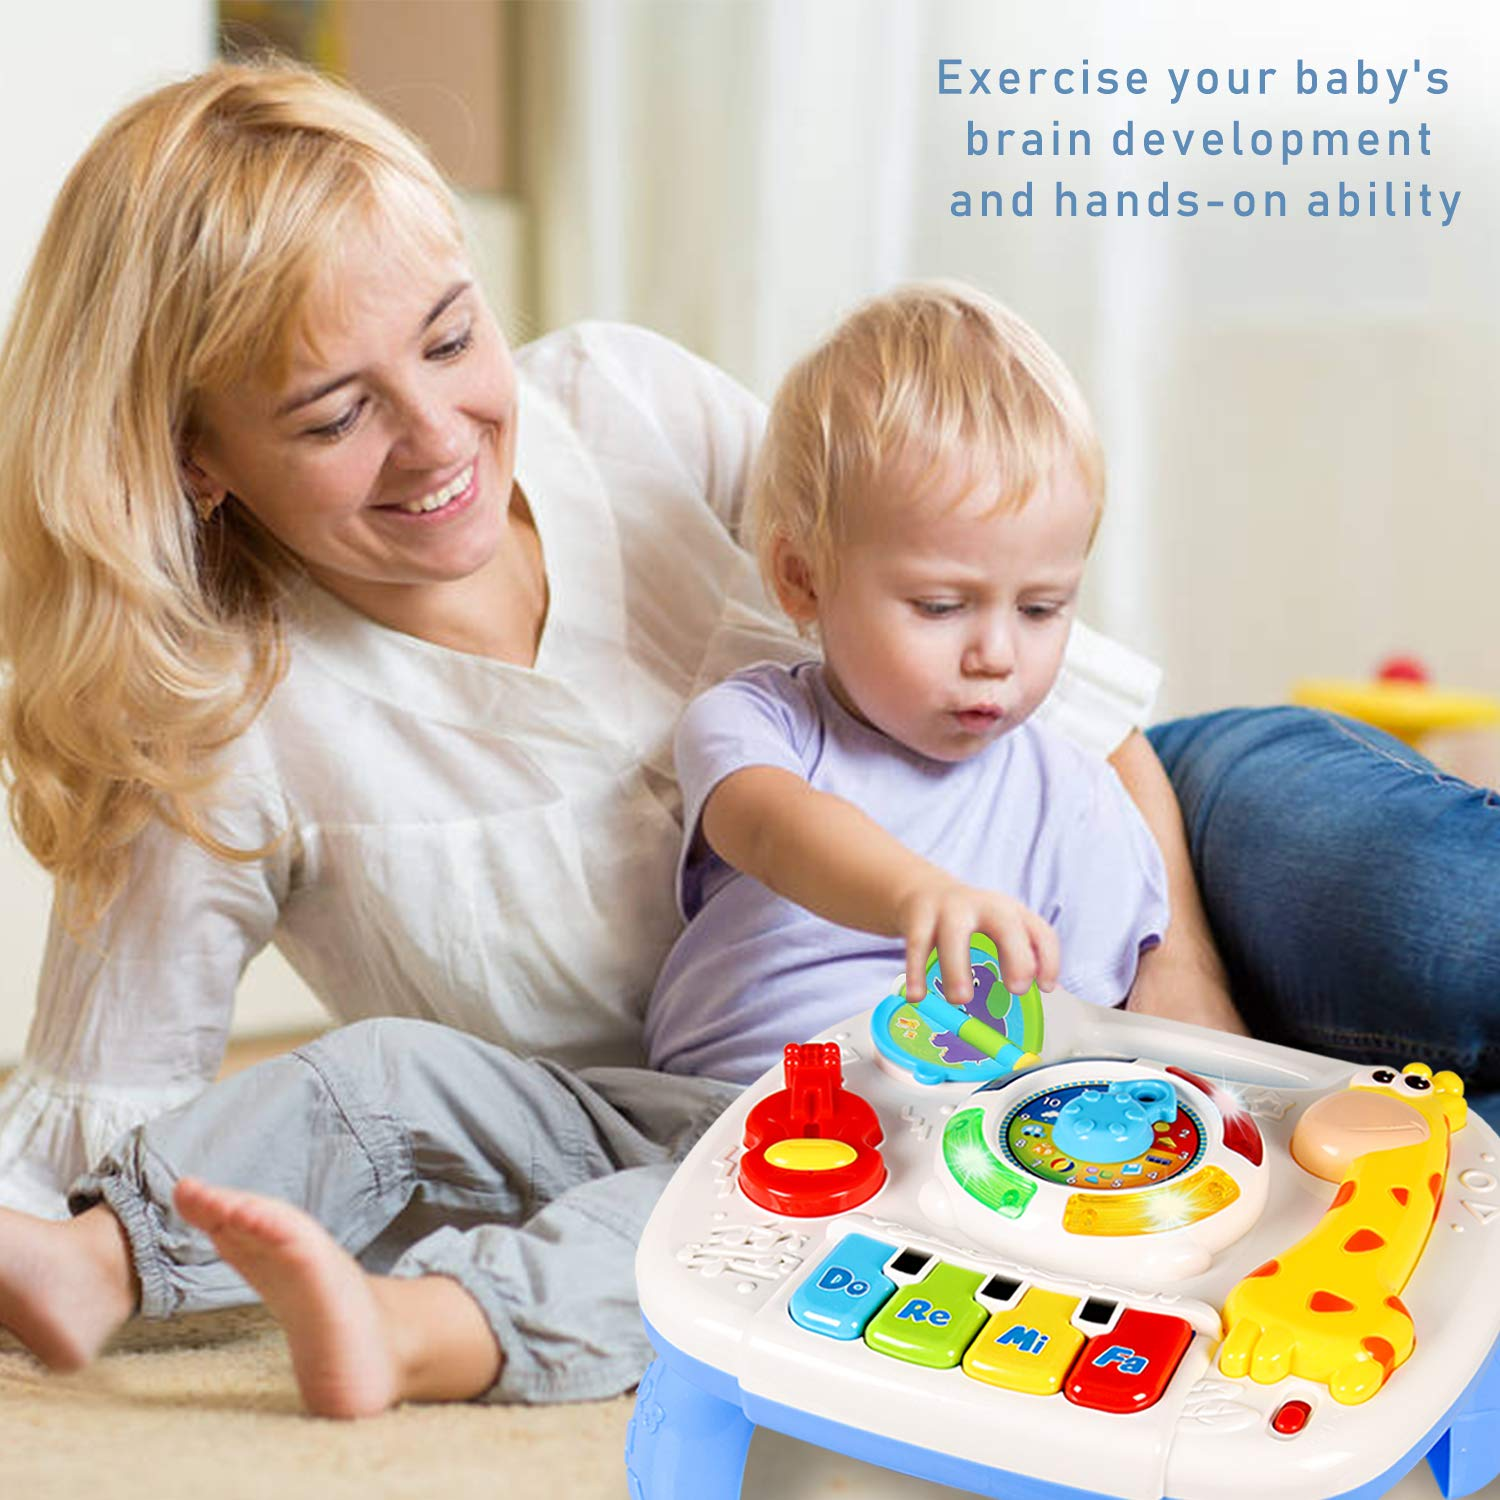 HOMOFY Baby Toys for 6-12 Month Baby Musical Learning Activity Table ,Built-in Animal Sounds, Music & Light Function,Early Development Baby Pull Toy for 1 2 3 Year Old Best Gift for Boys and Girls by HOMOFY (Image #2)